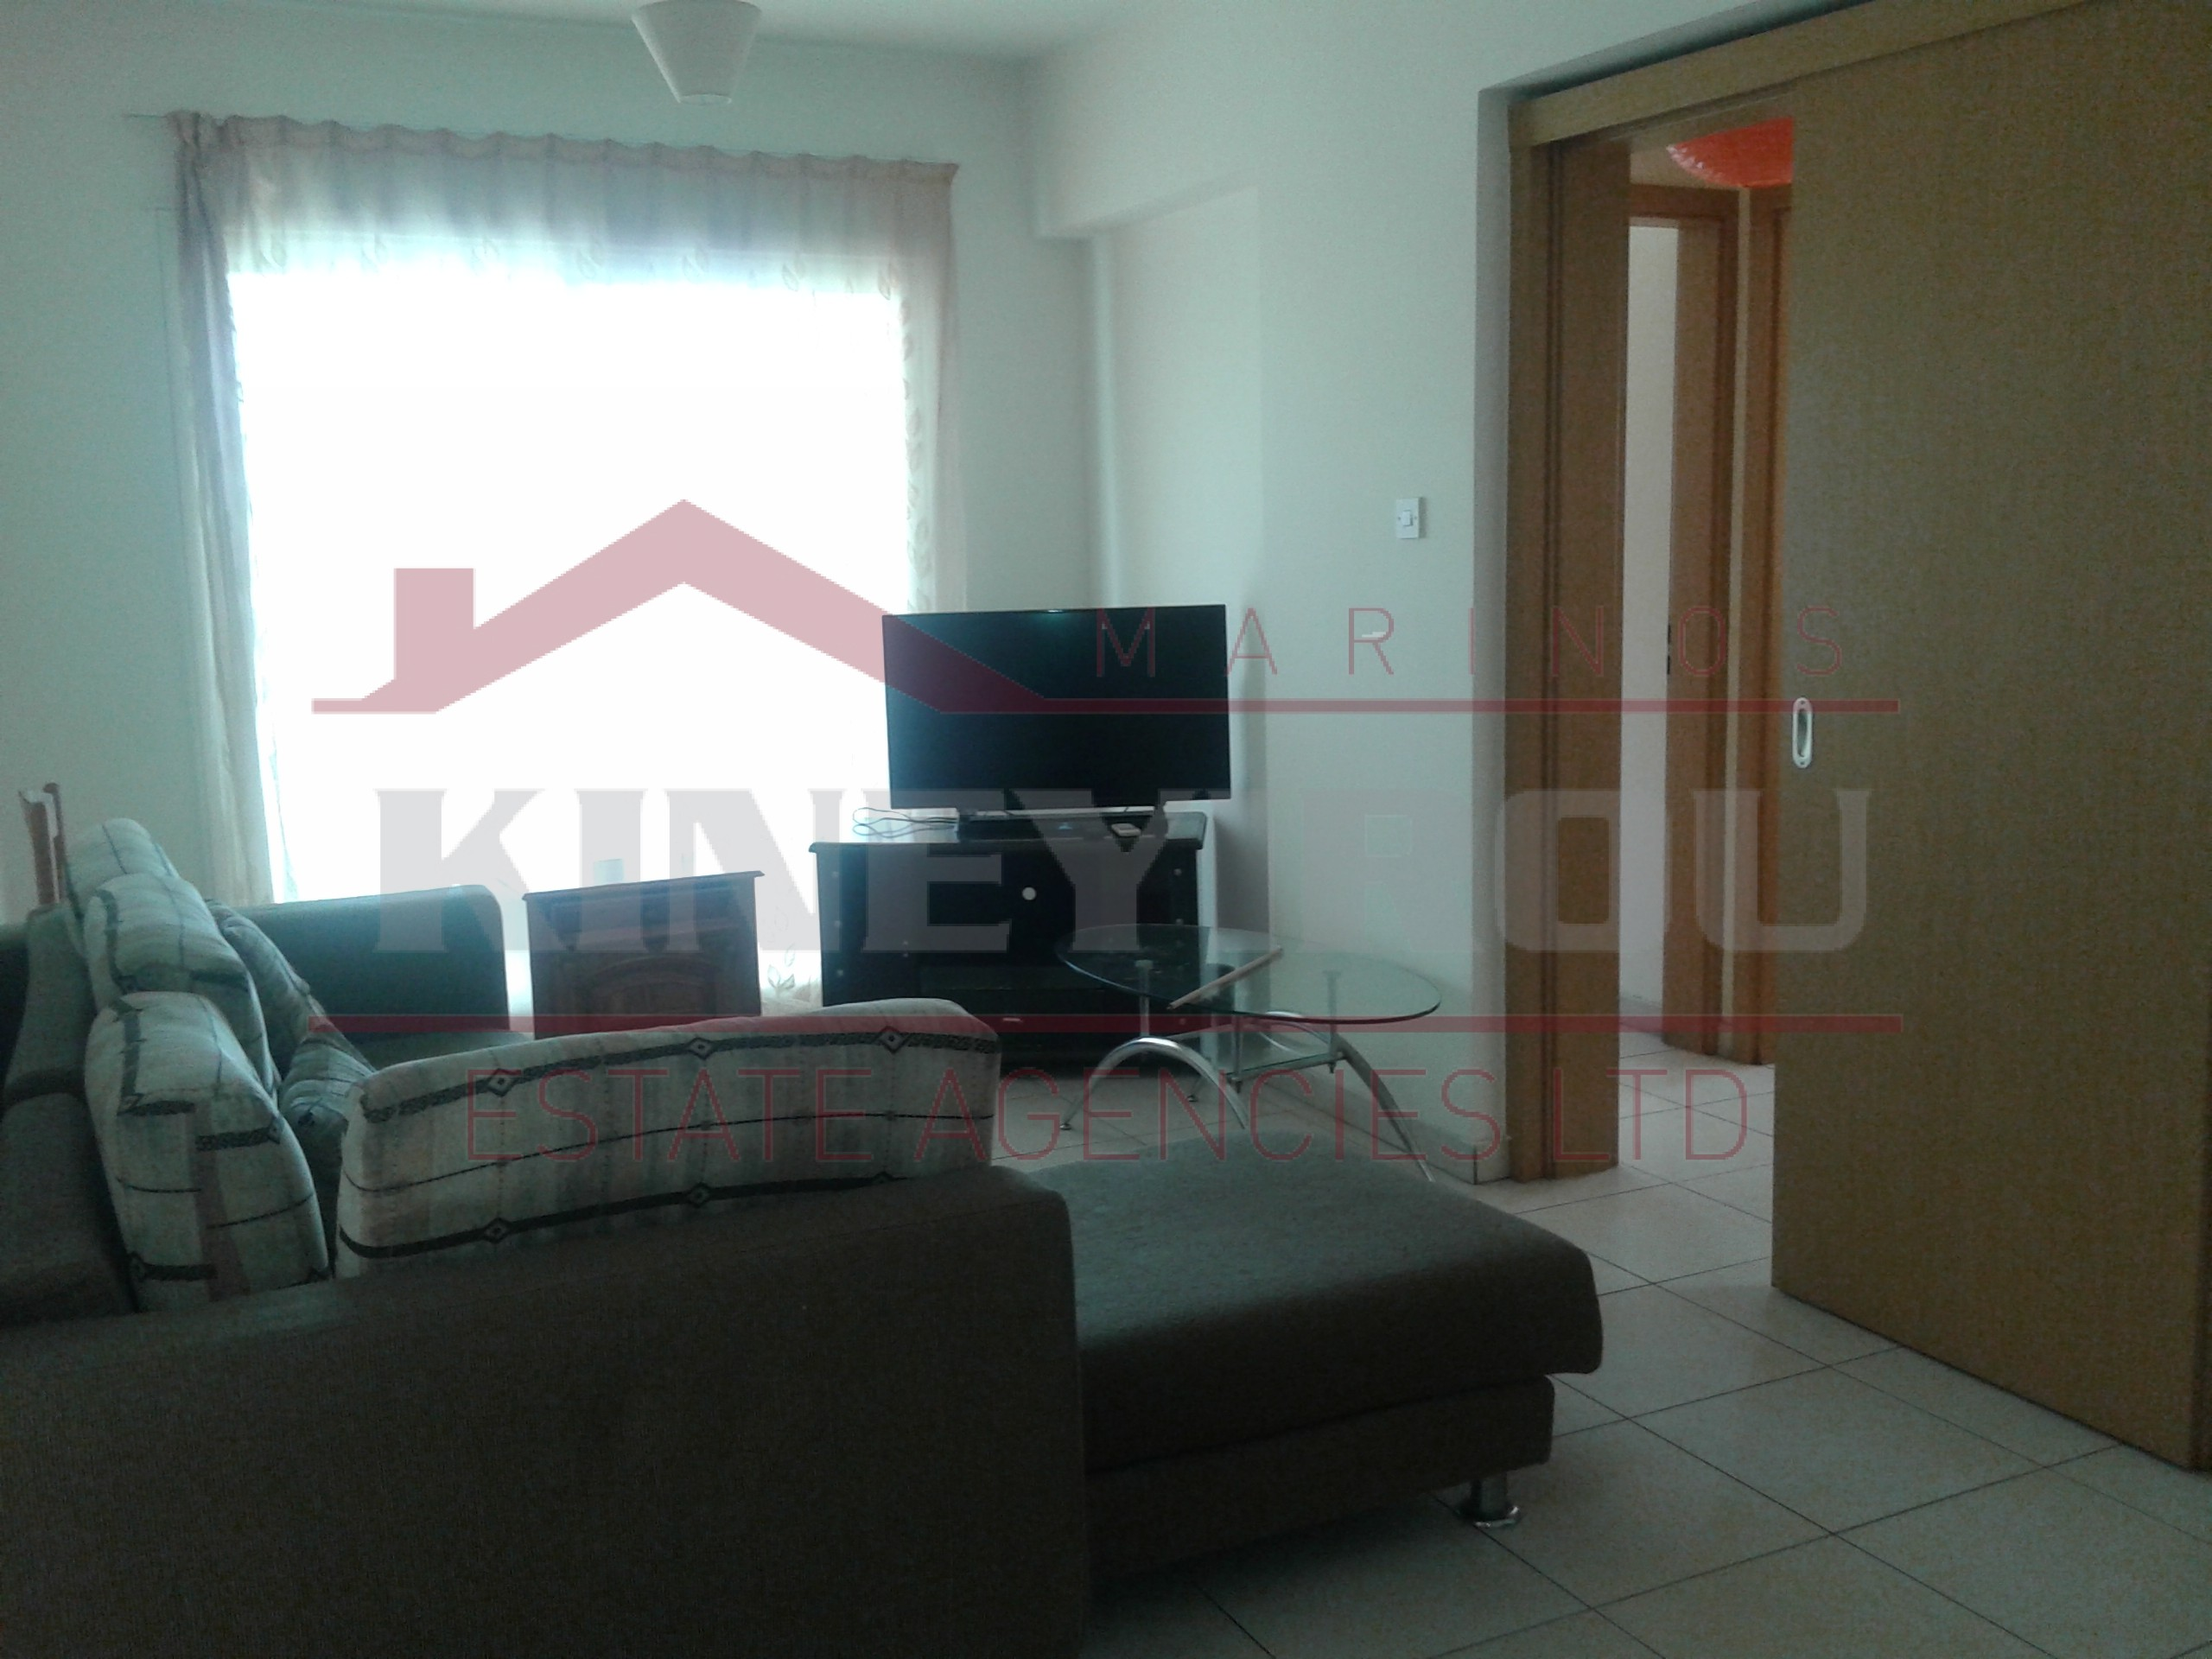 Lovely apartment for rent in town center, Larnaca